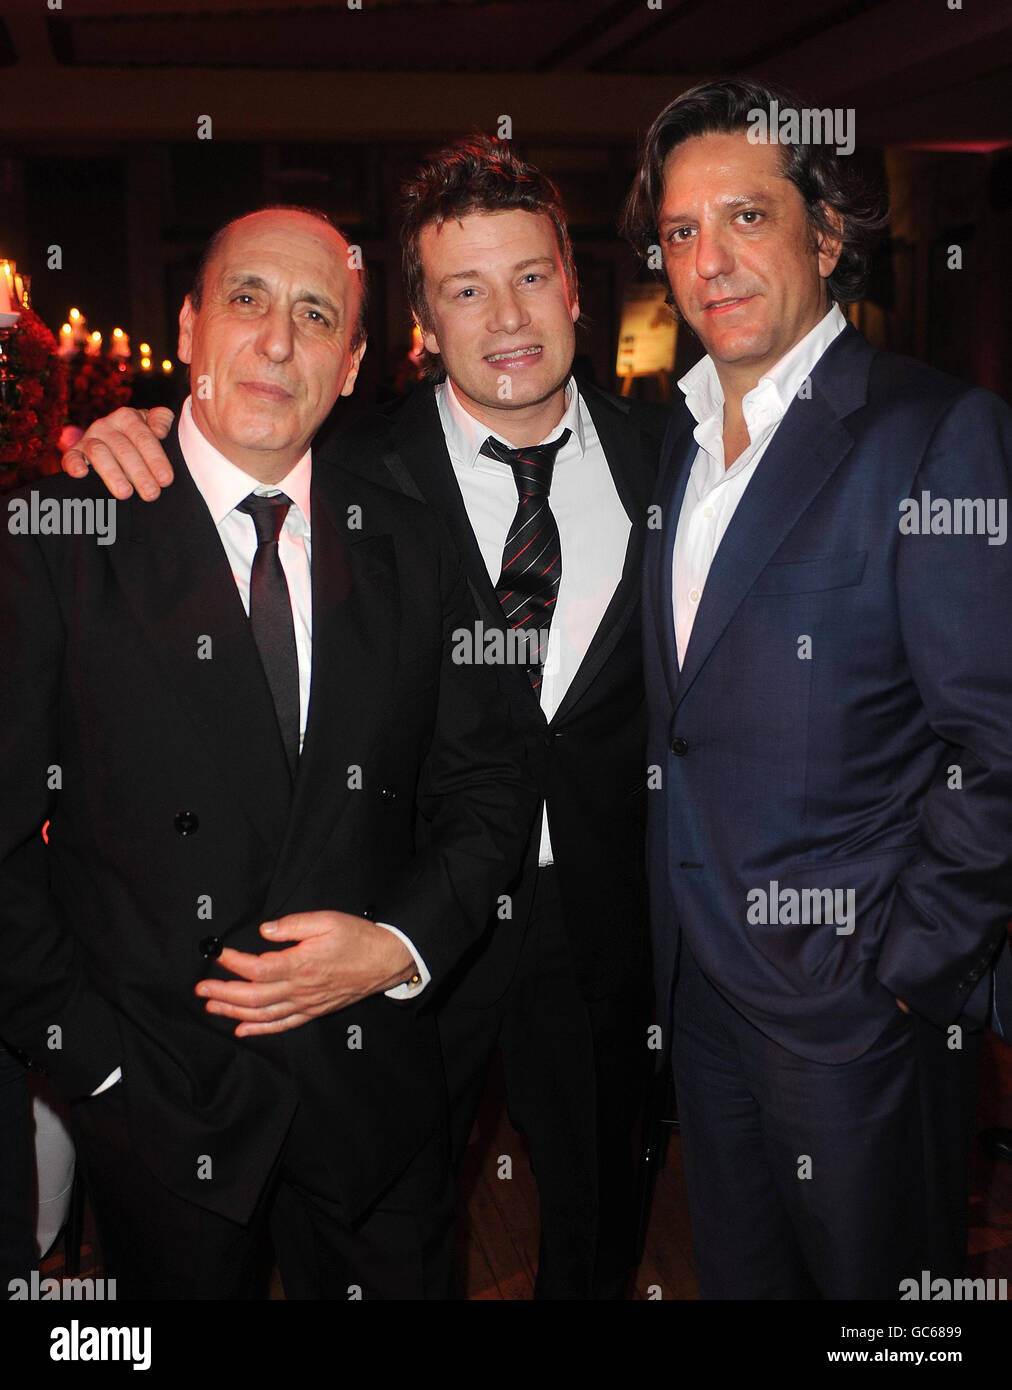 Jamie Oliver's Big Night Out - Stock Image